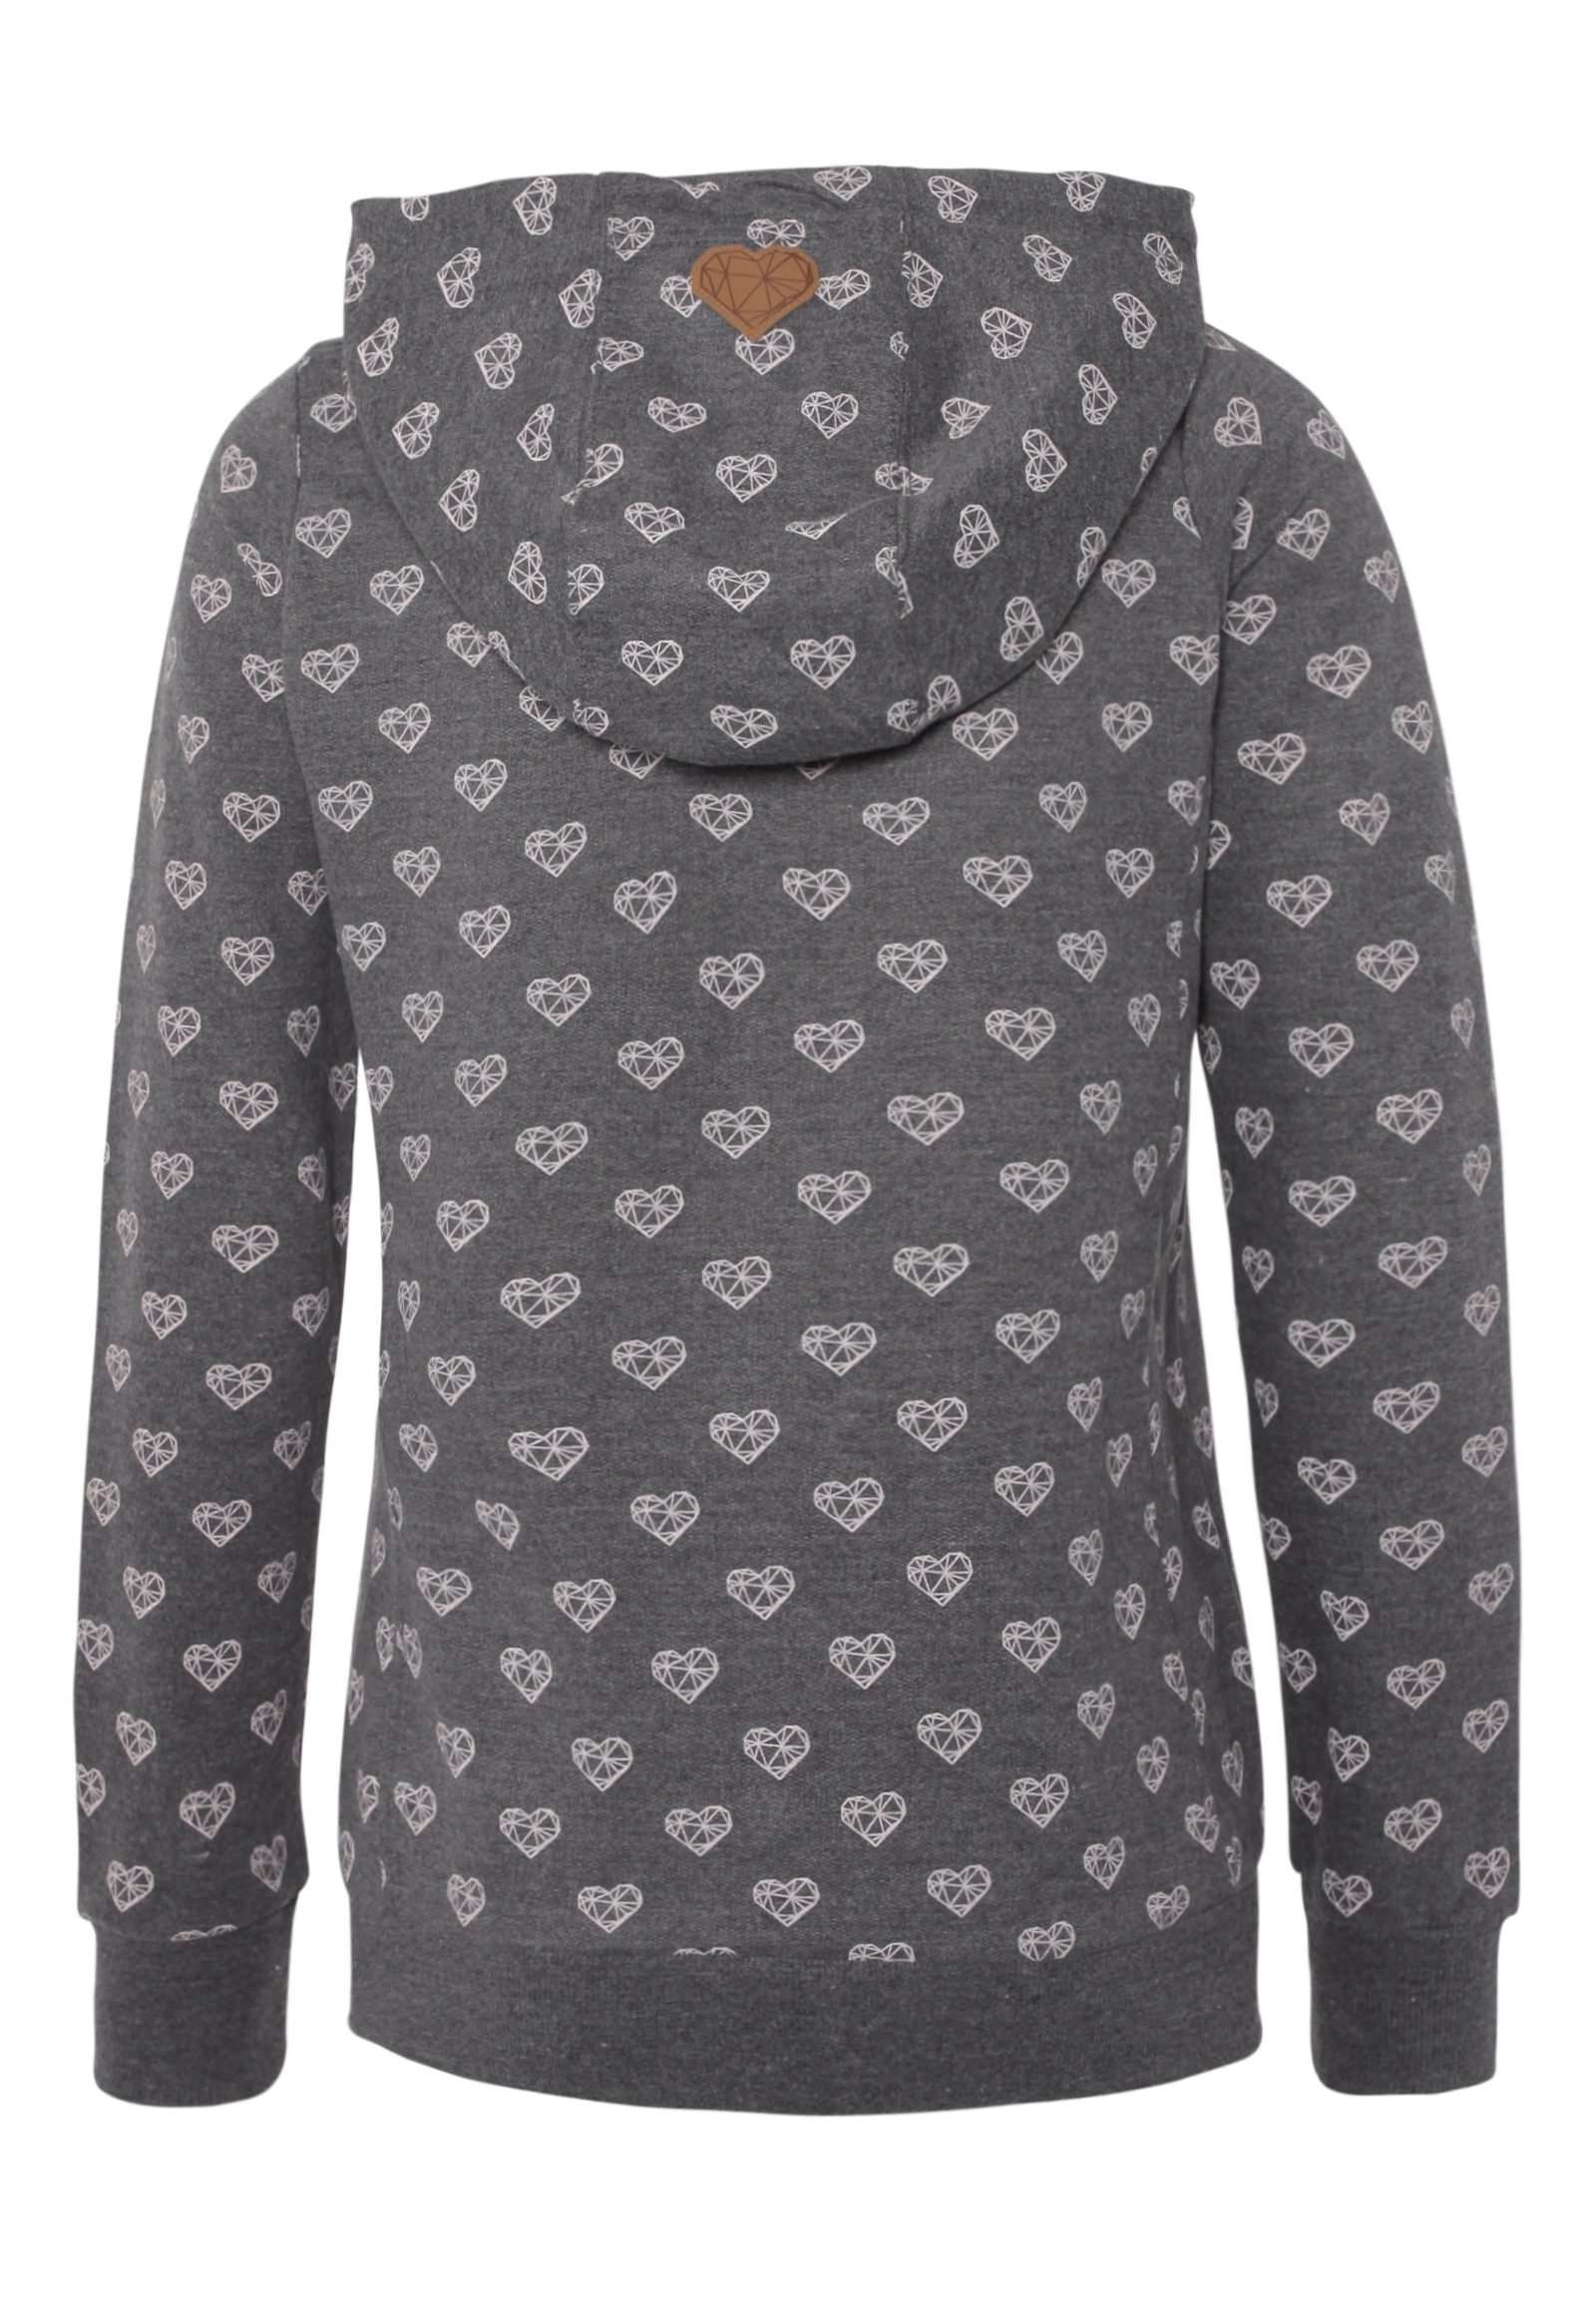 Vorschau: Alloverprint Sweatjacke